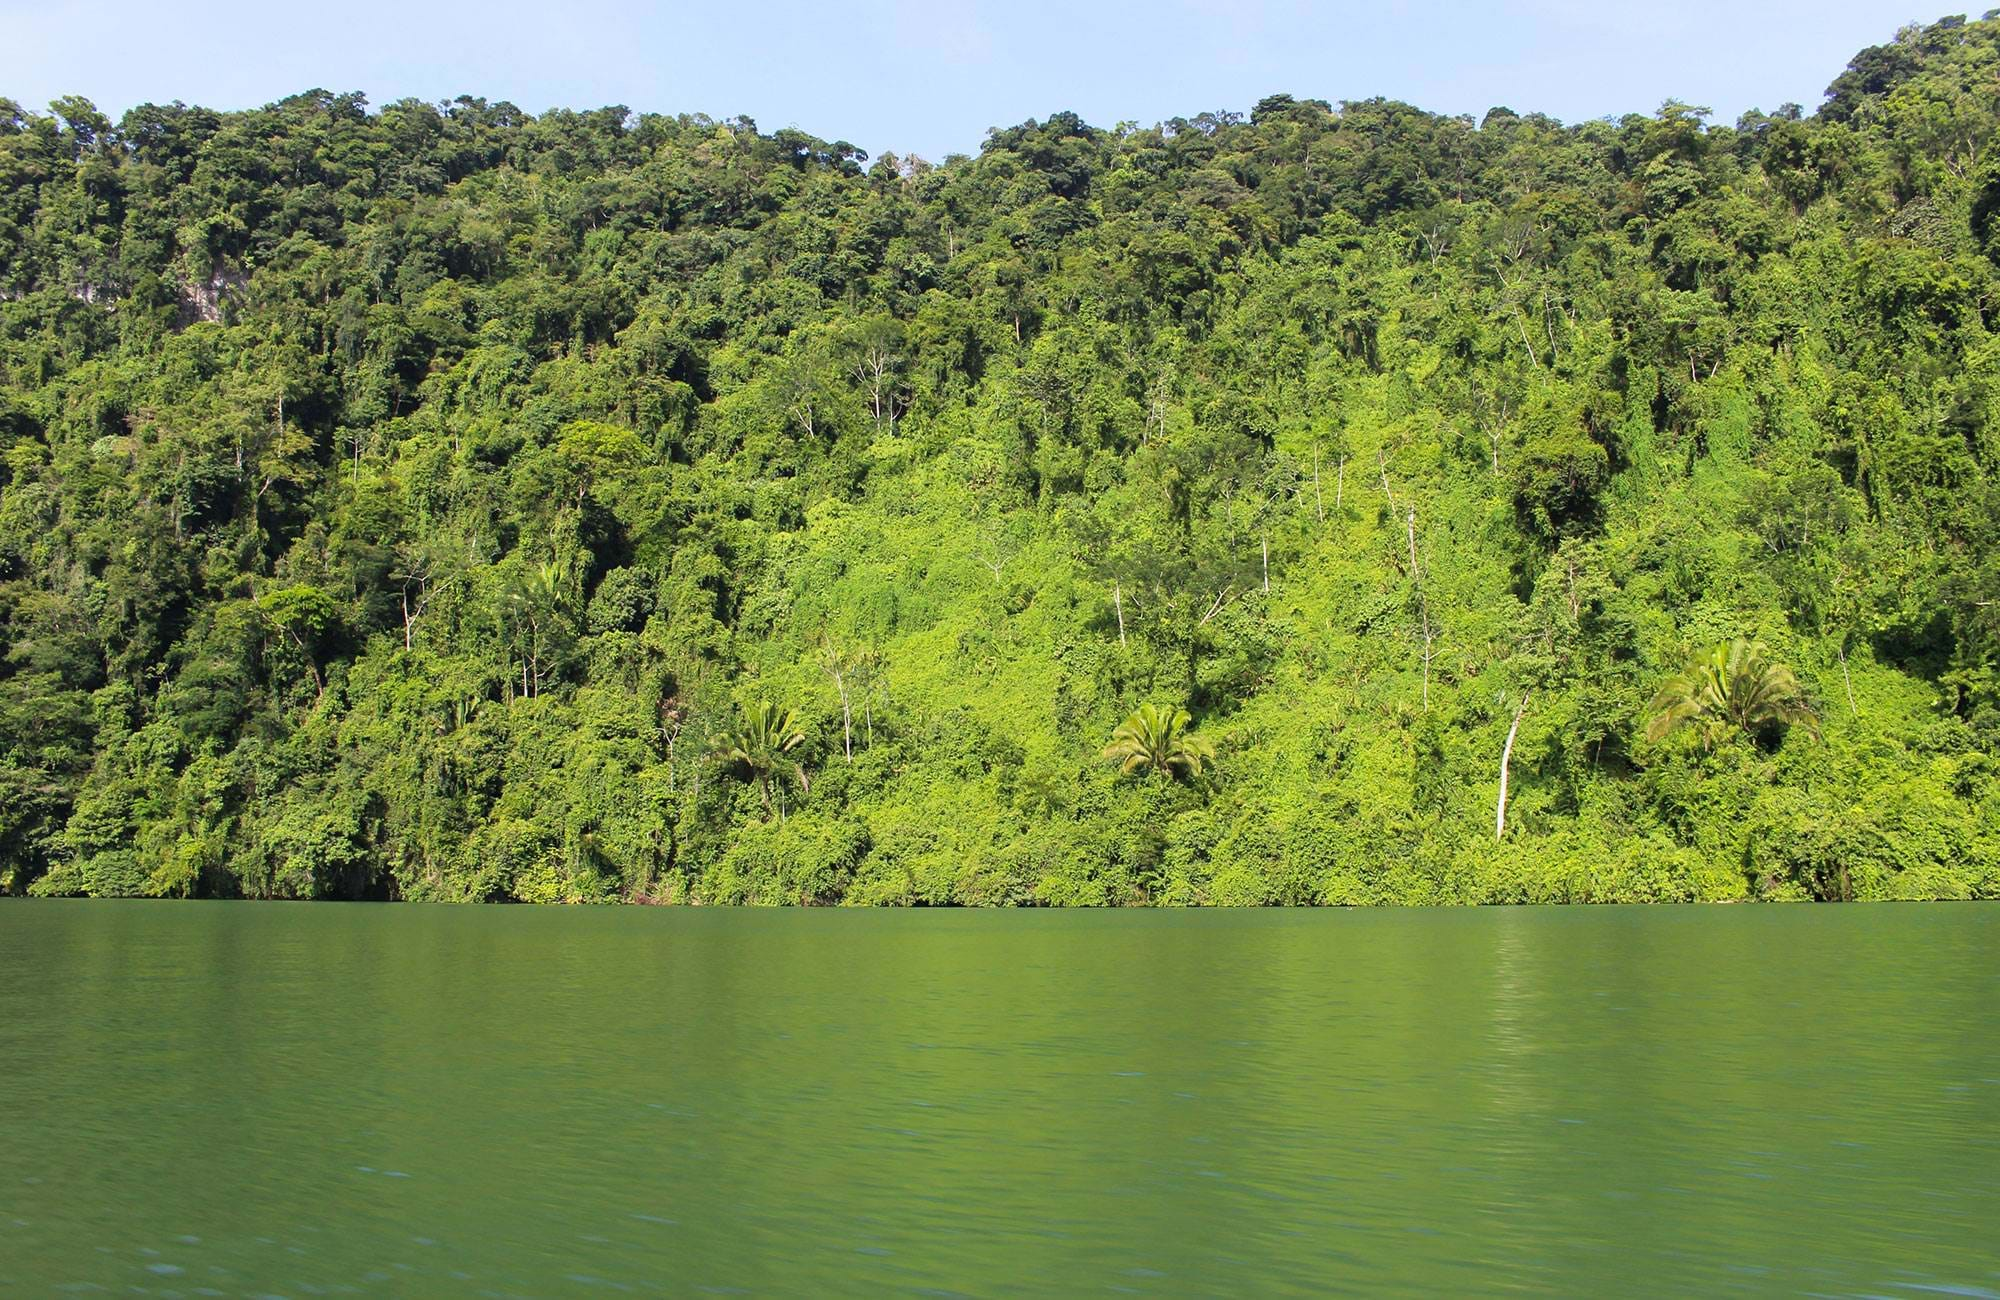 guatamala-jungle-by-the-river